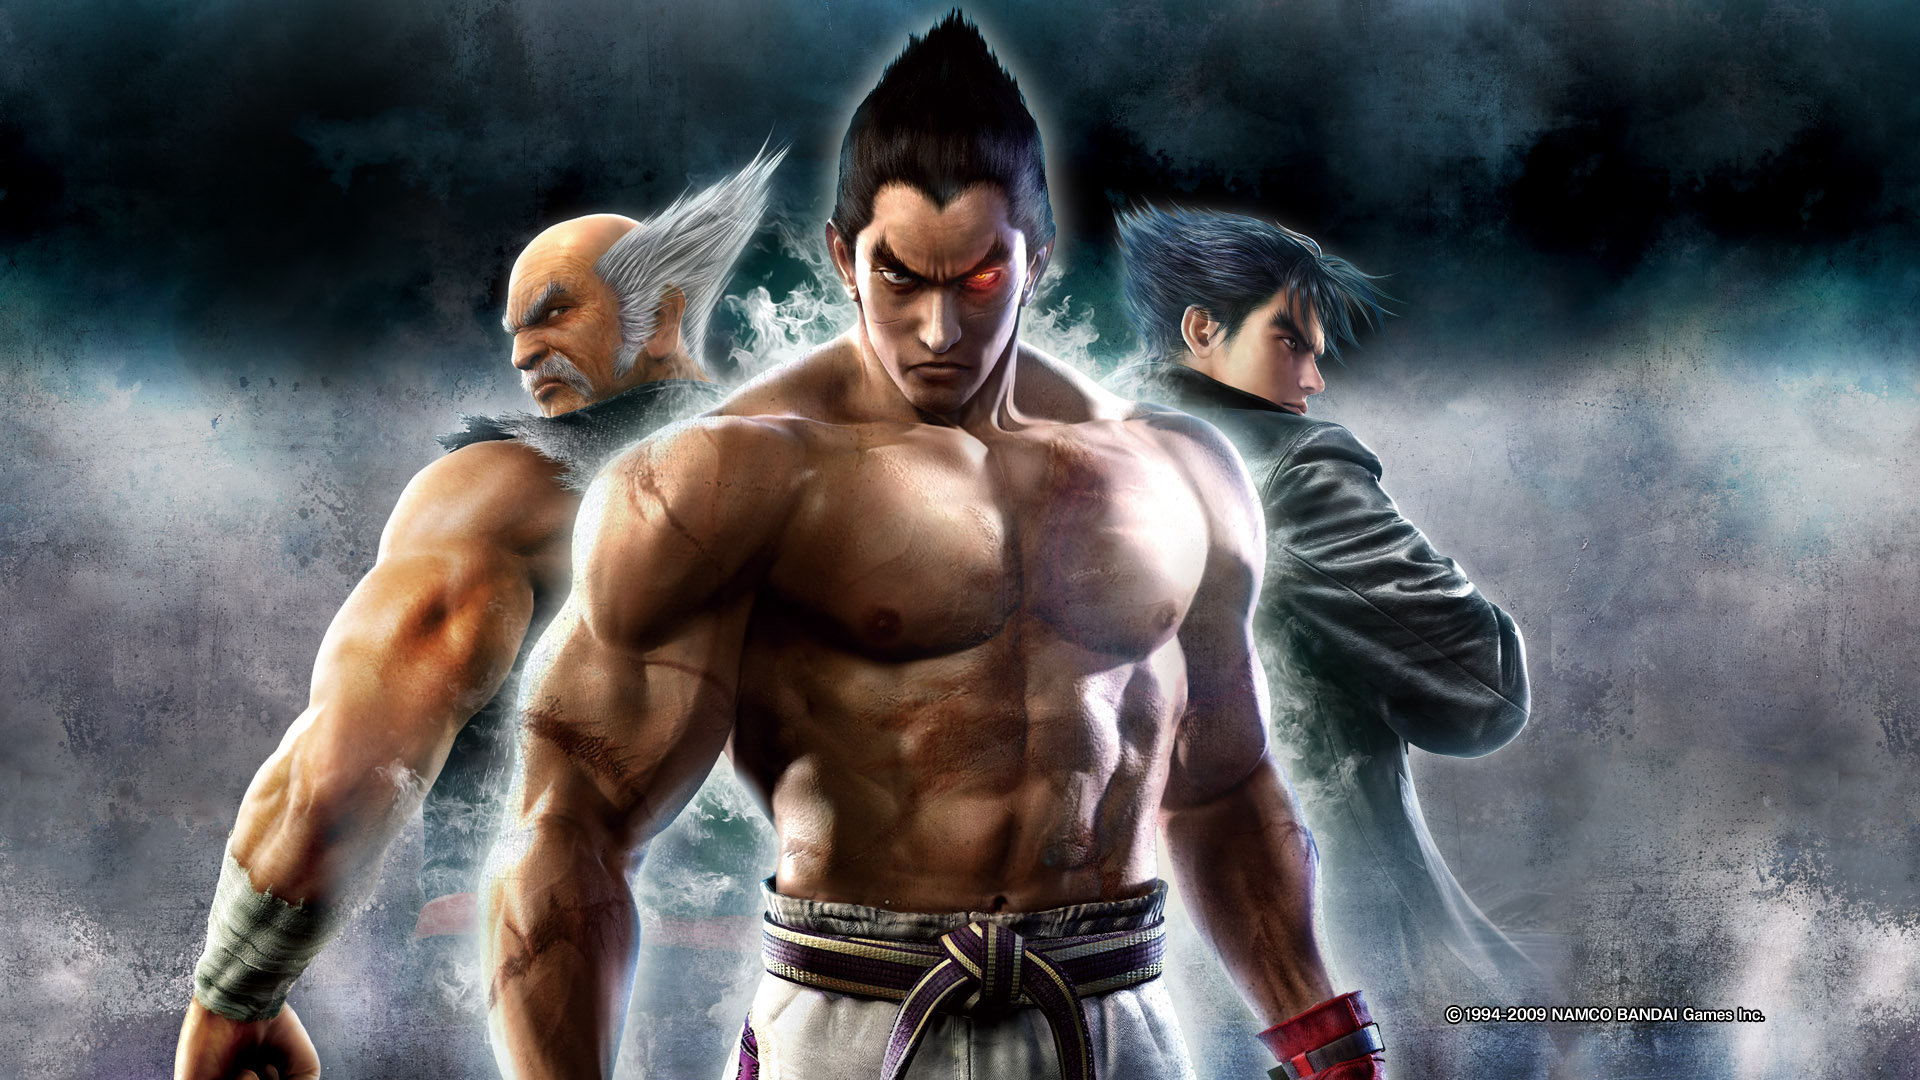 Tekken Full HD Wallpaper